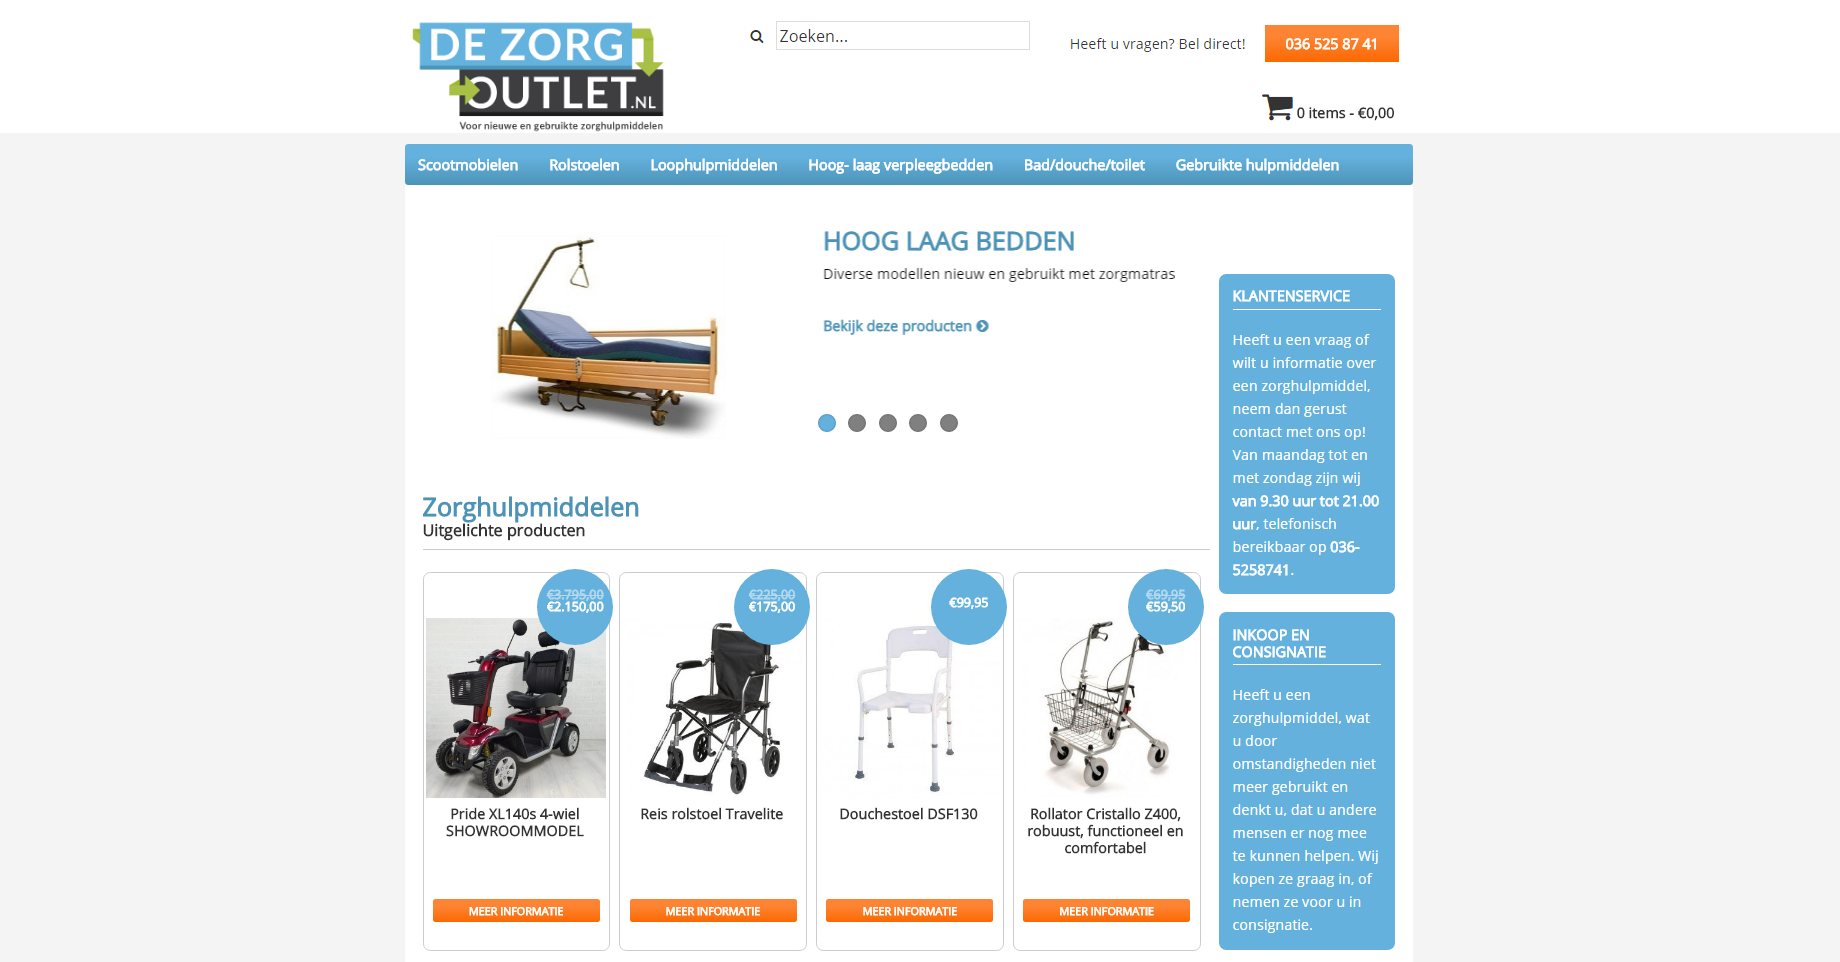 De zorgoutlet website